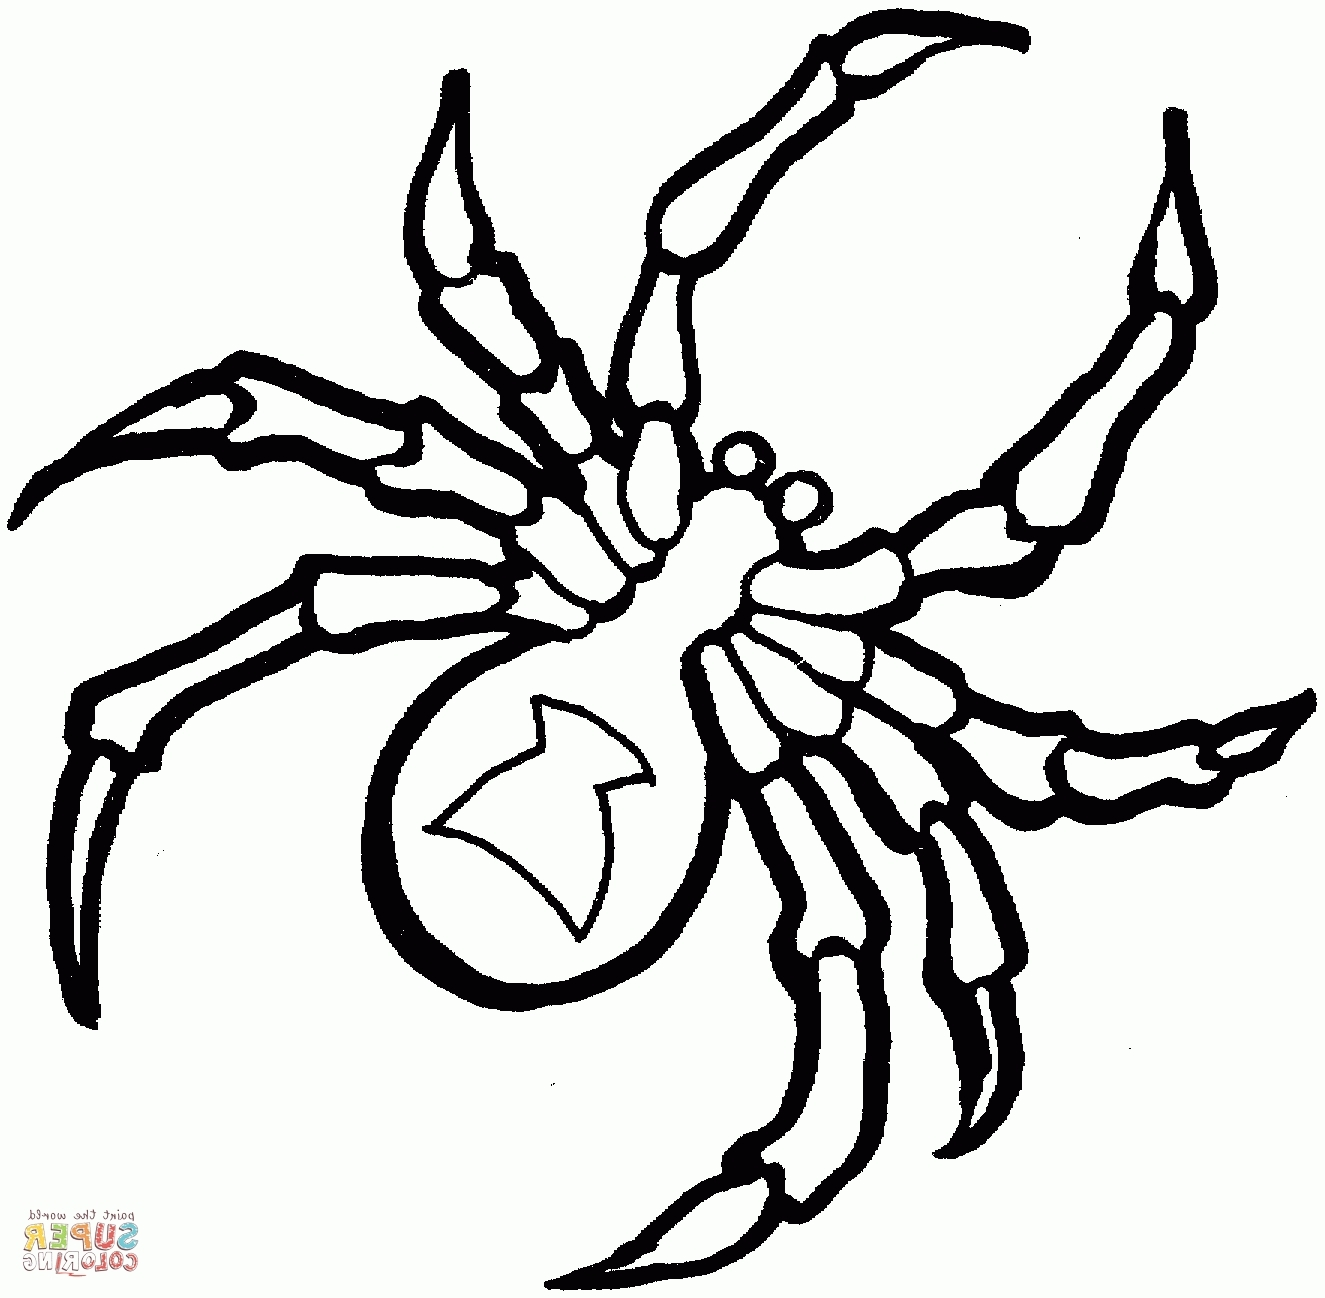 23 Spider Coloring Pages Collections | FREE COLORING PAGES - Part 2